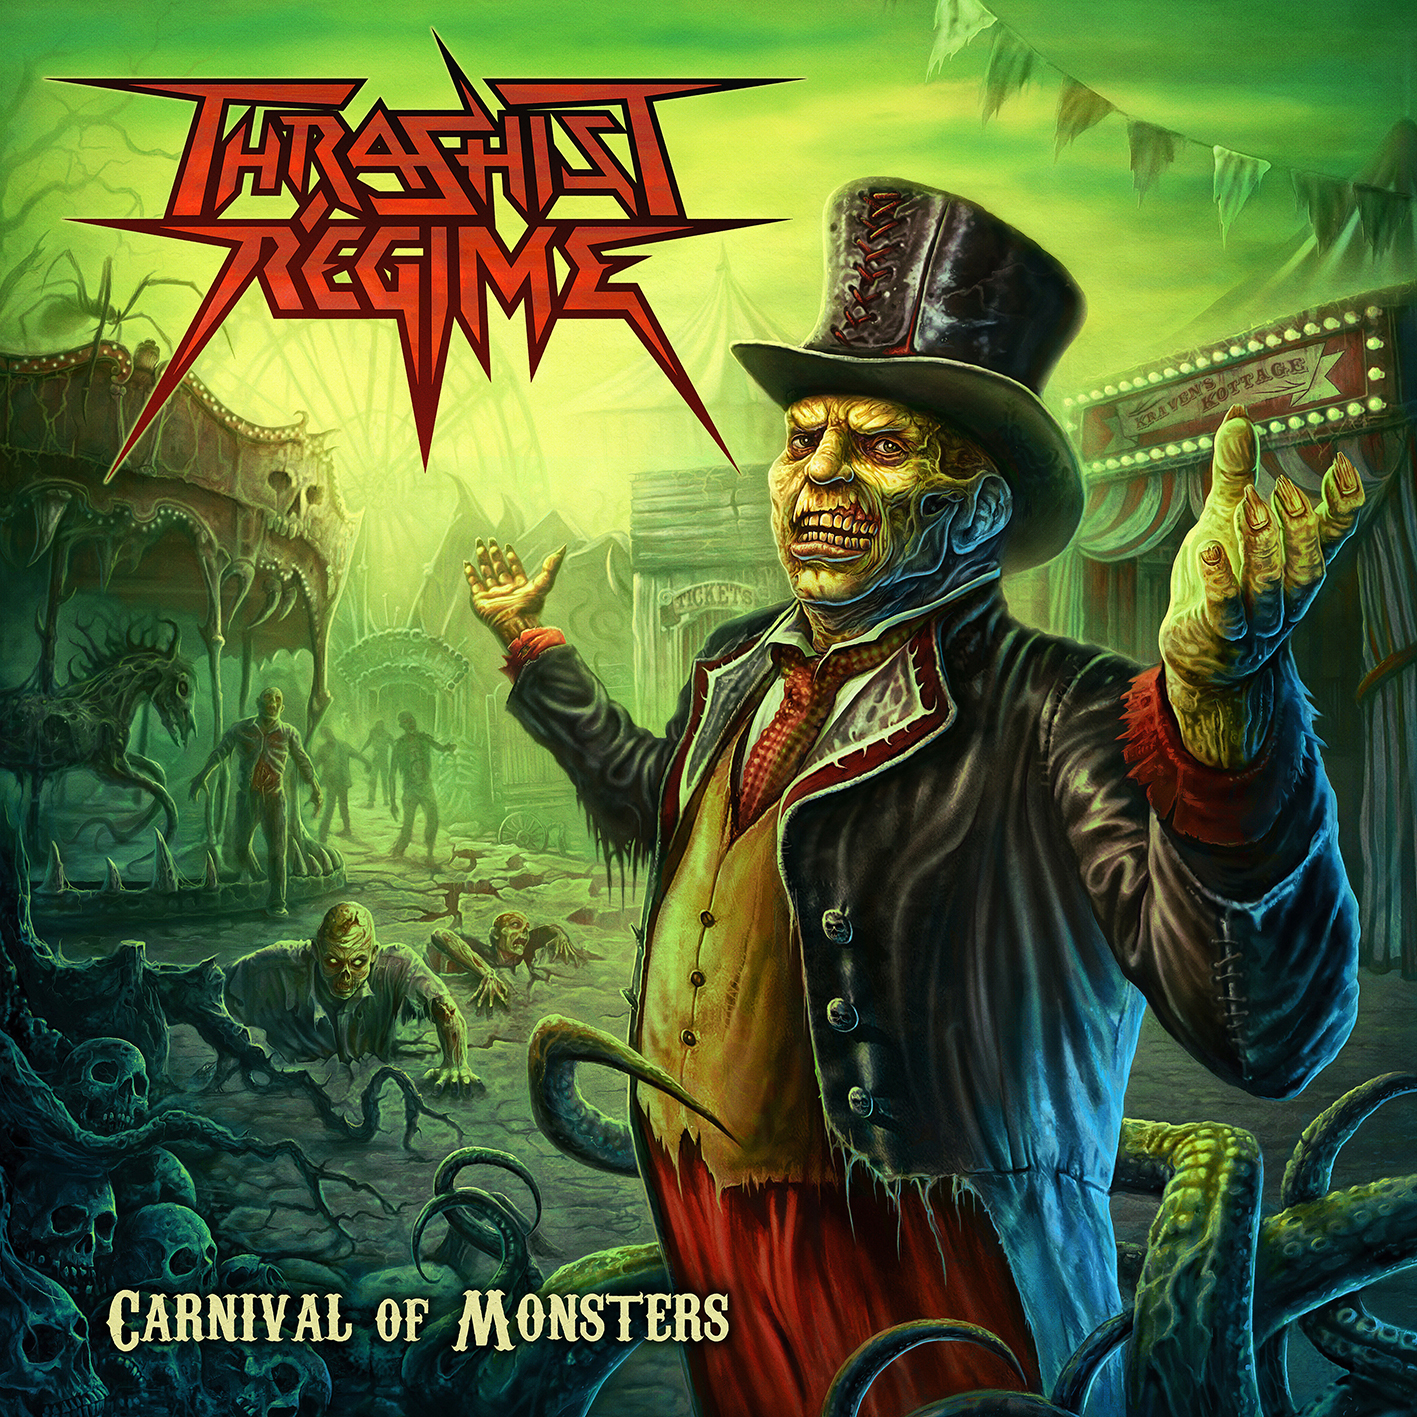 Thrashist Regime – Carnival of Monsters